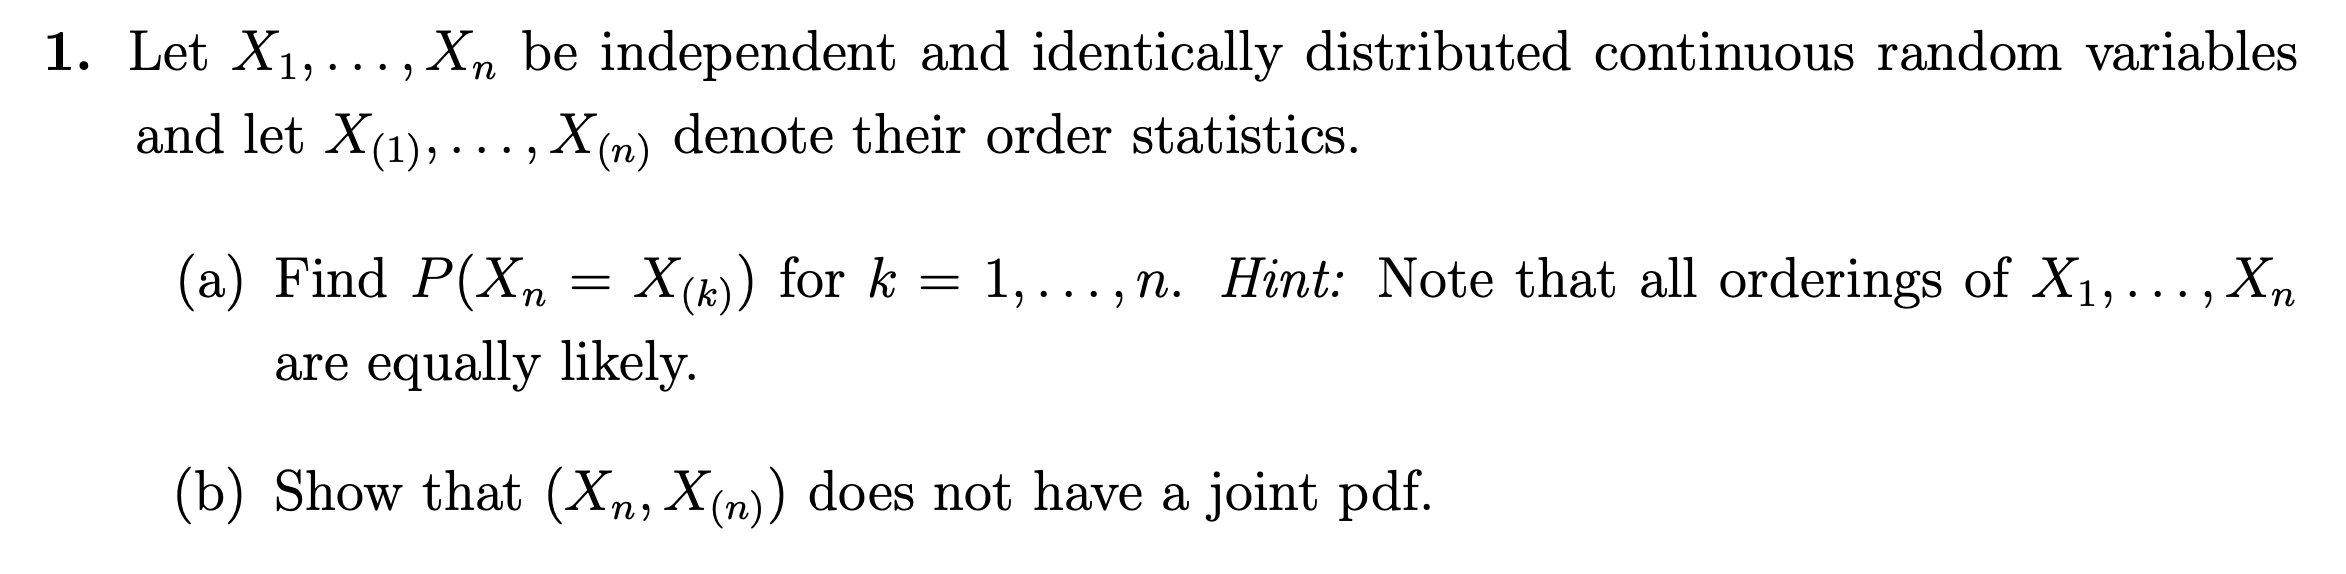 1. Let X1, ..., Xn be independent and identically distributed continuous random variables and let X(1), ..., X(n) denote thei